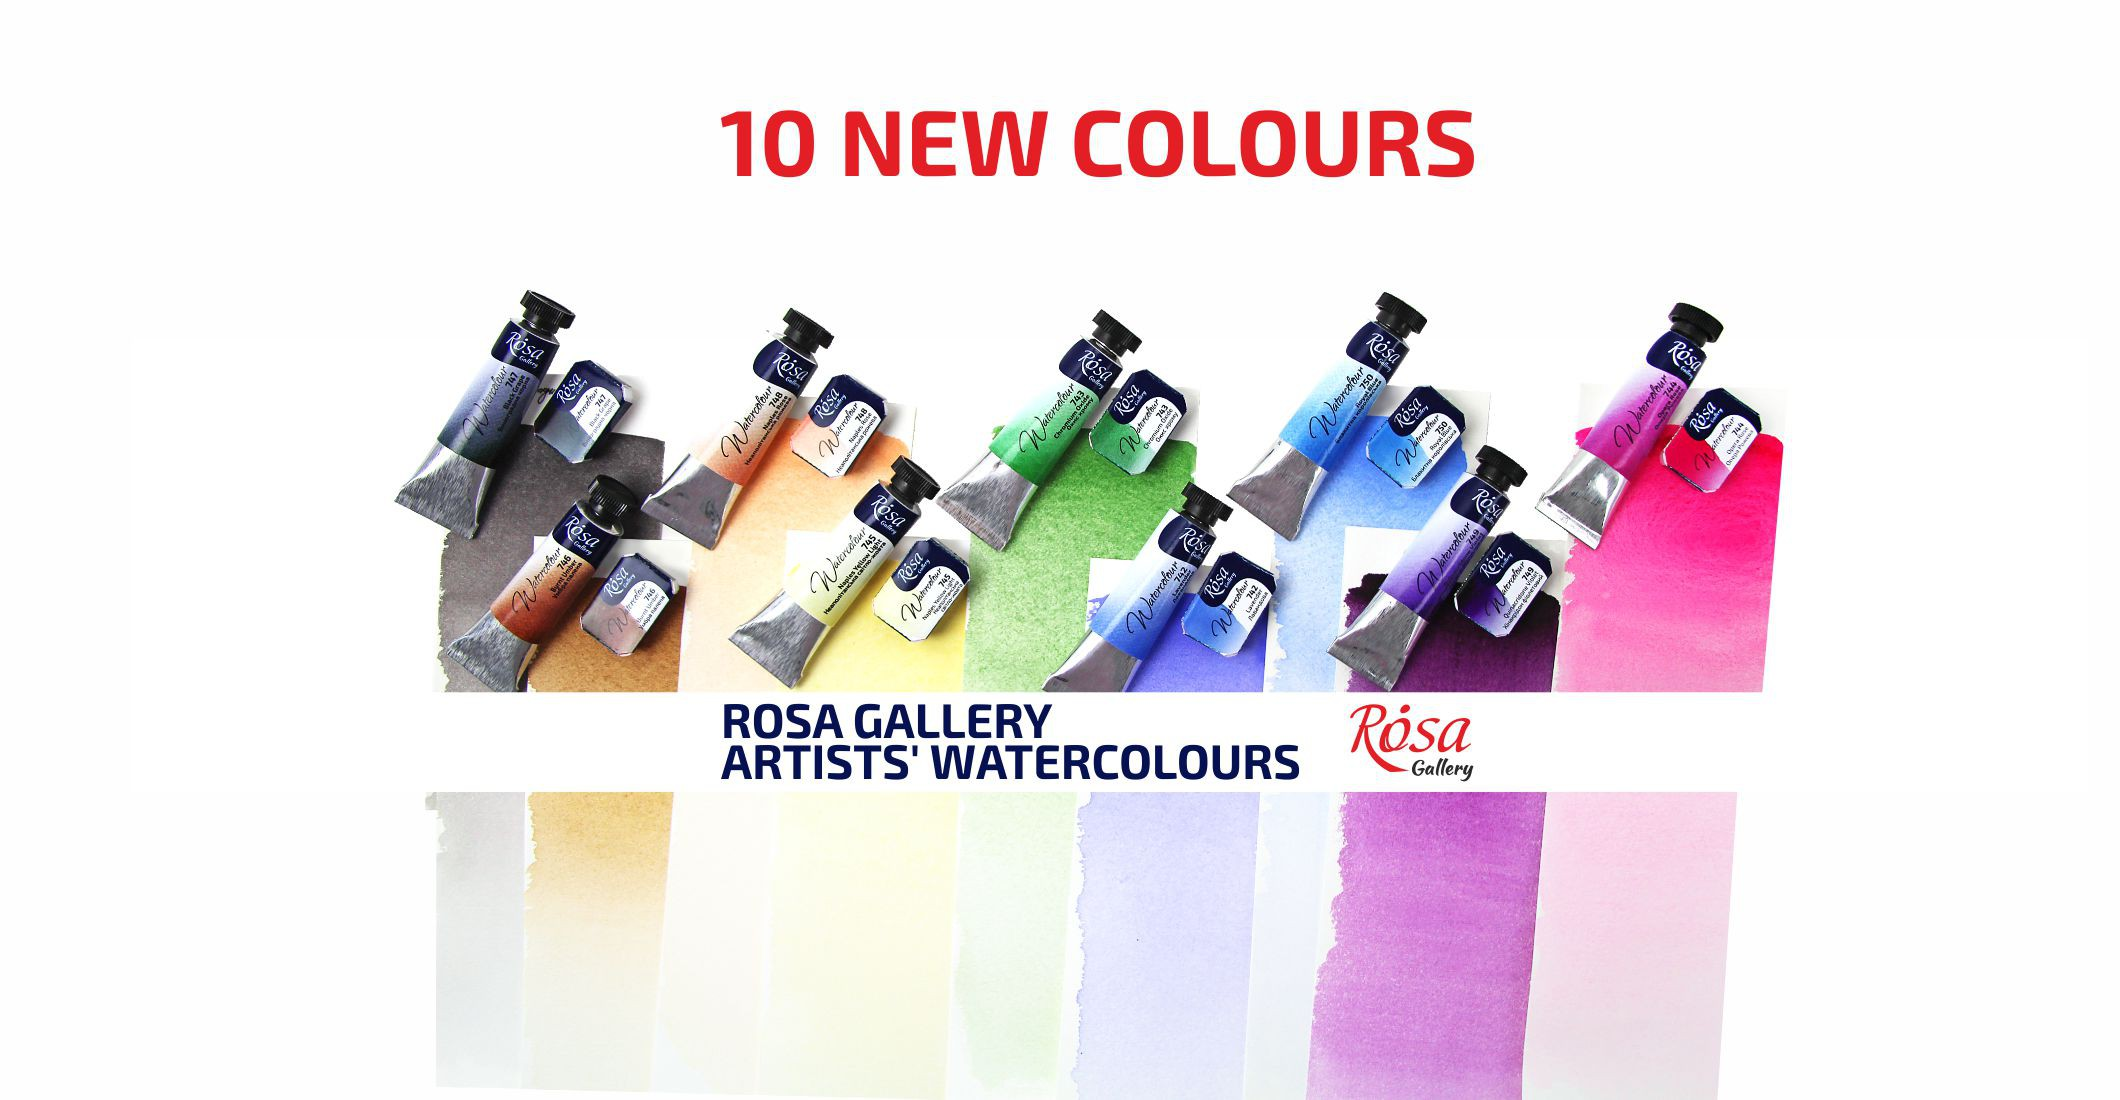 ROSA Gallery Artists' Watercolours